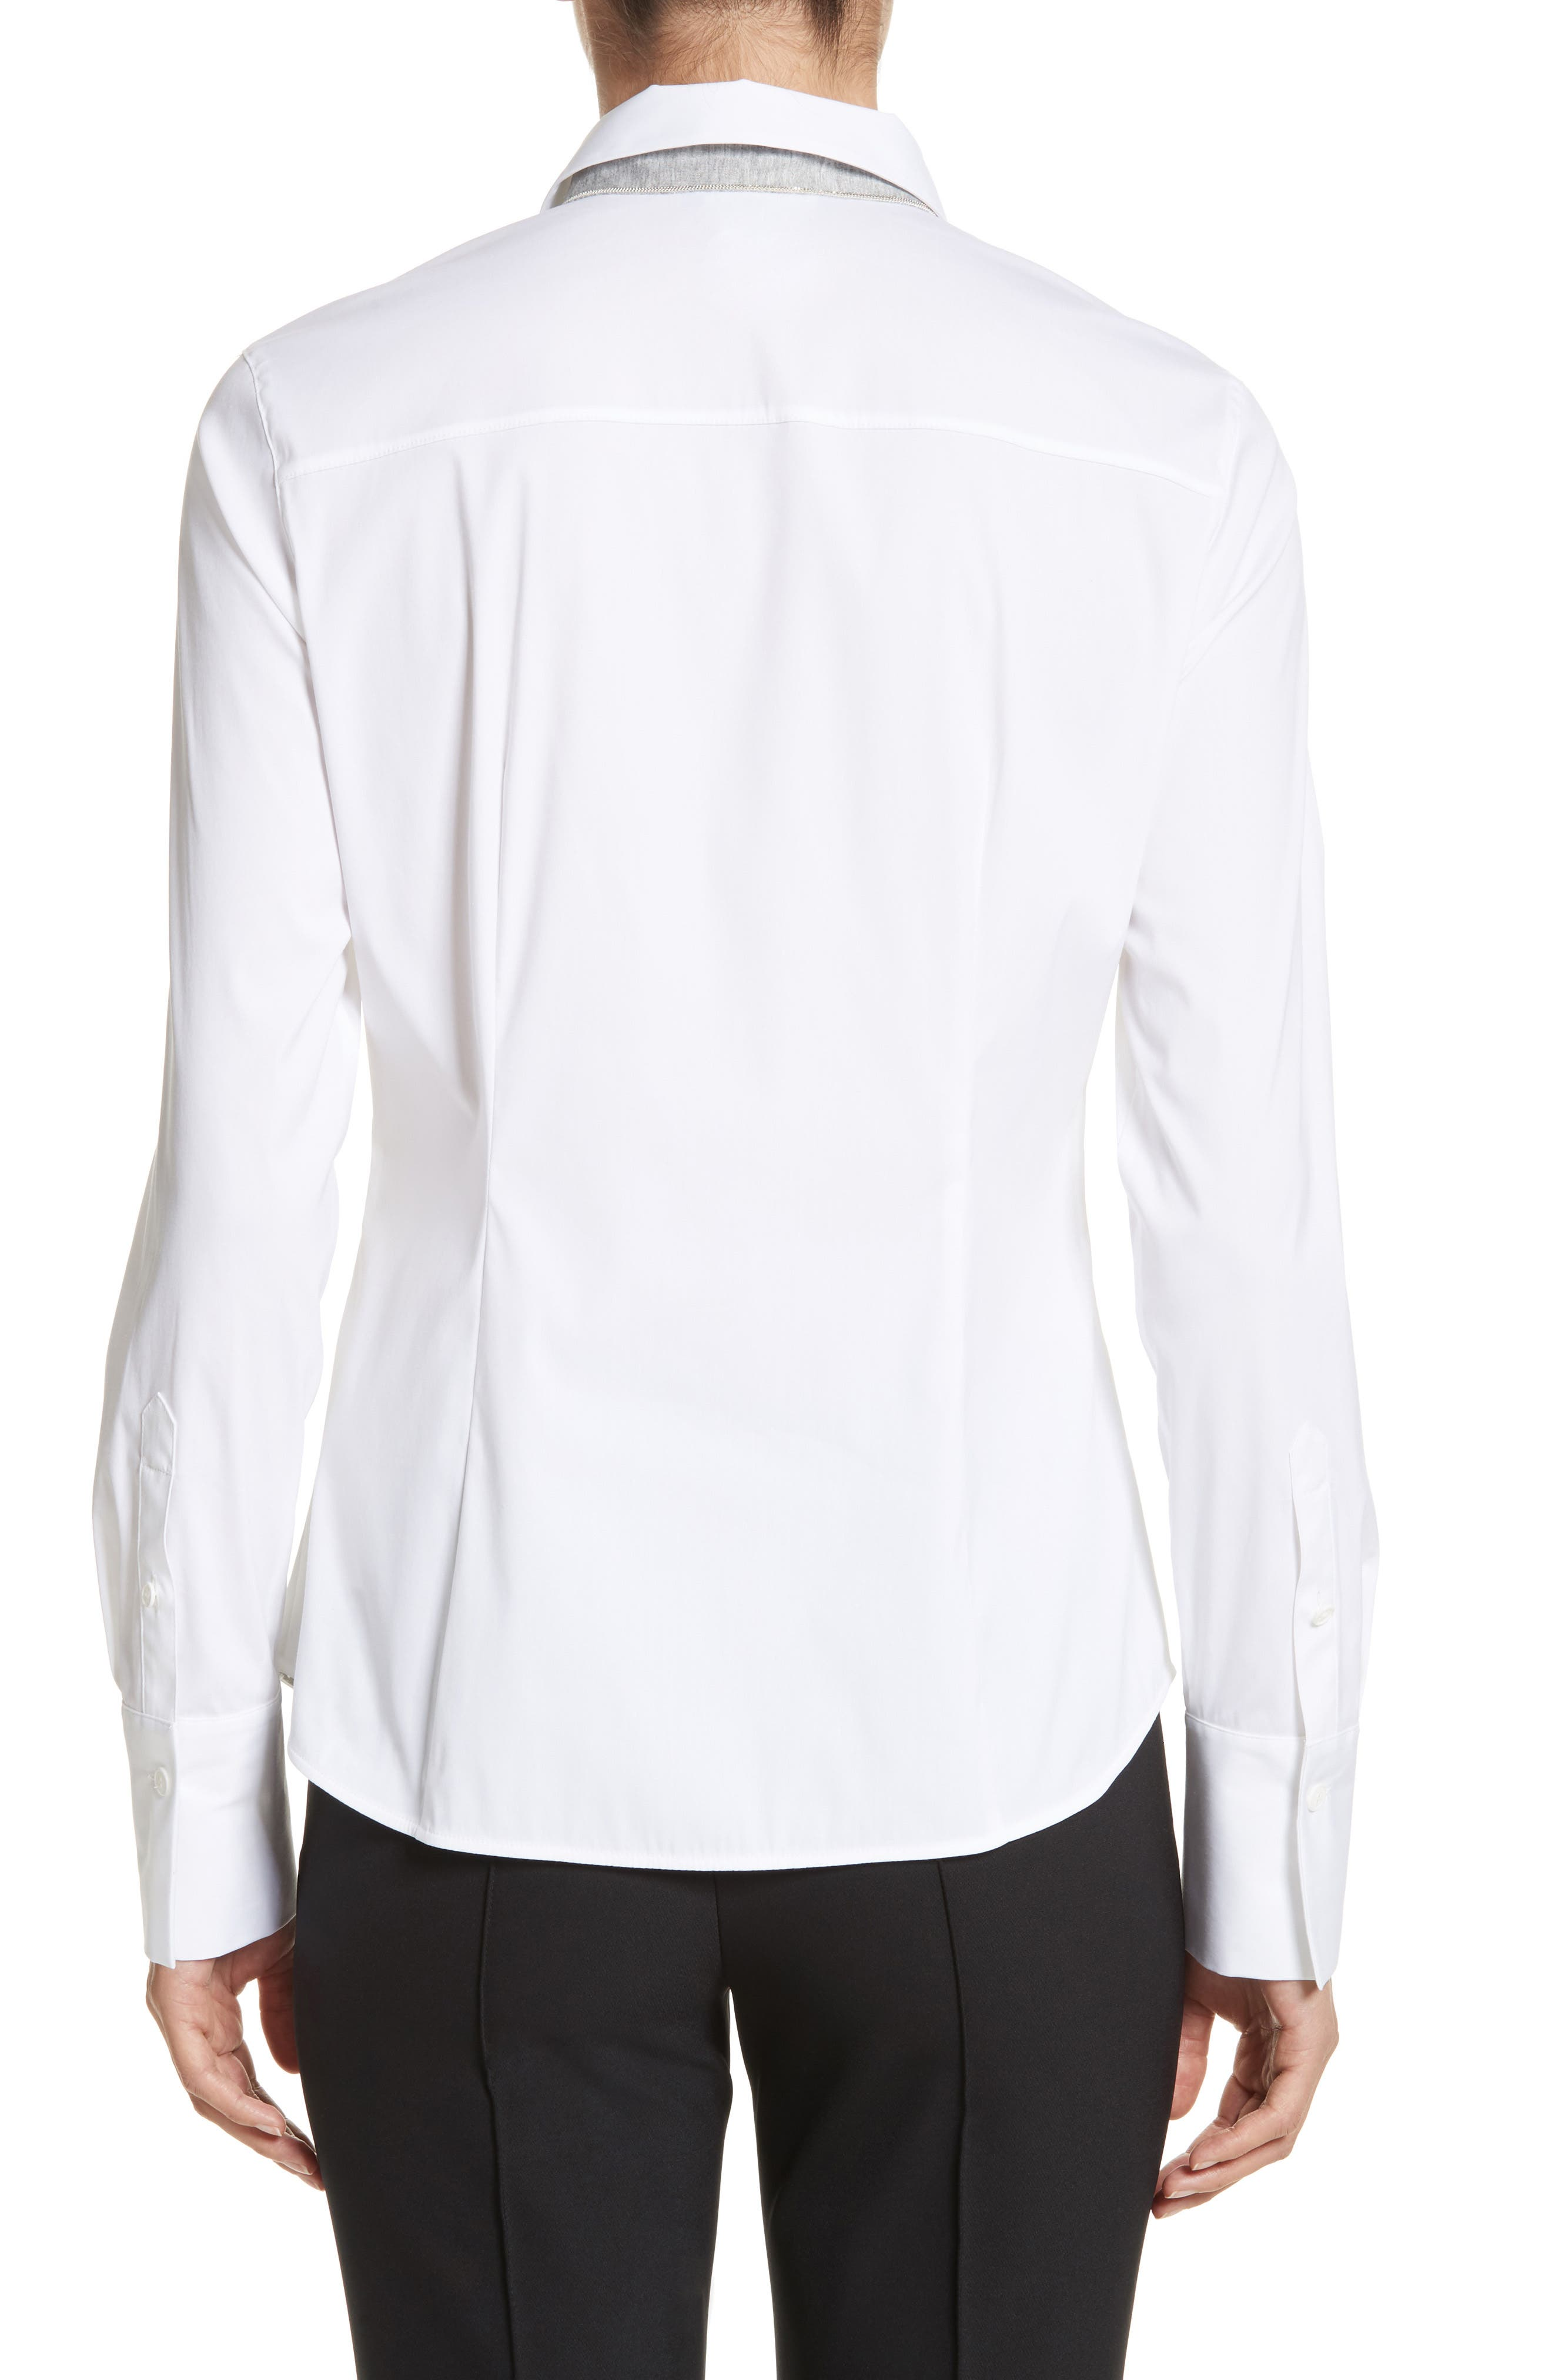 LAFAYETTE 148 NEW YORK,                             Linley Stretch Cotton Blouse,                             Alternate thumbnail 2, color,                             WHITE